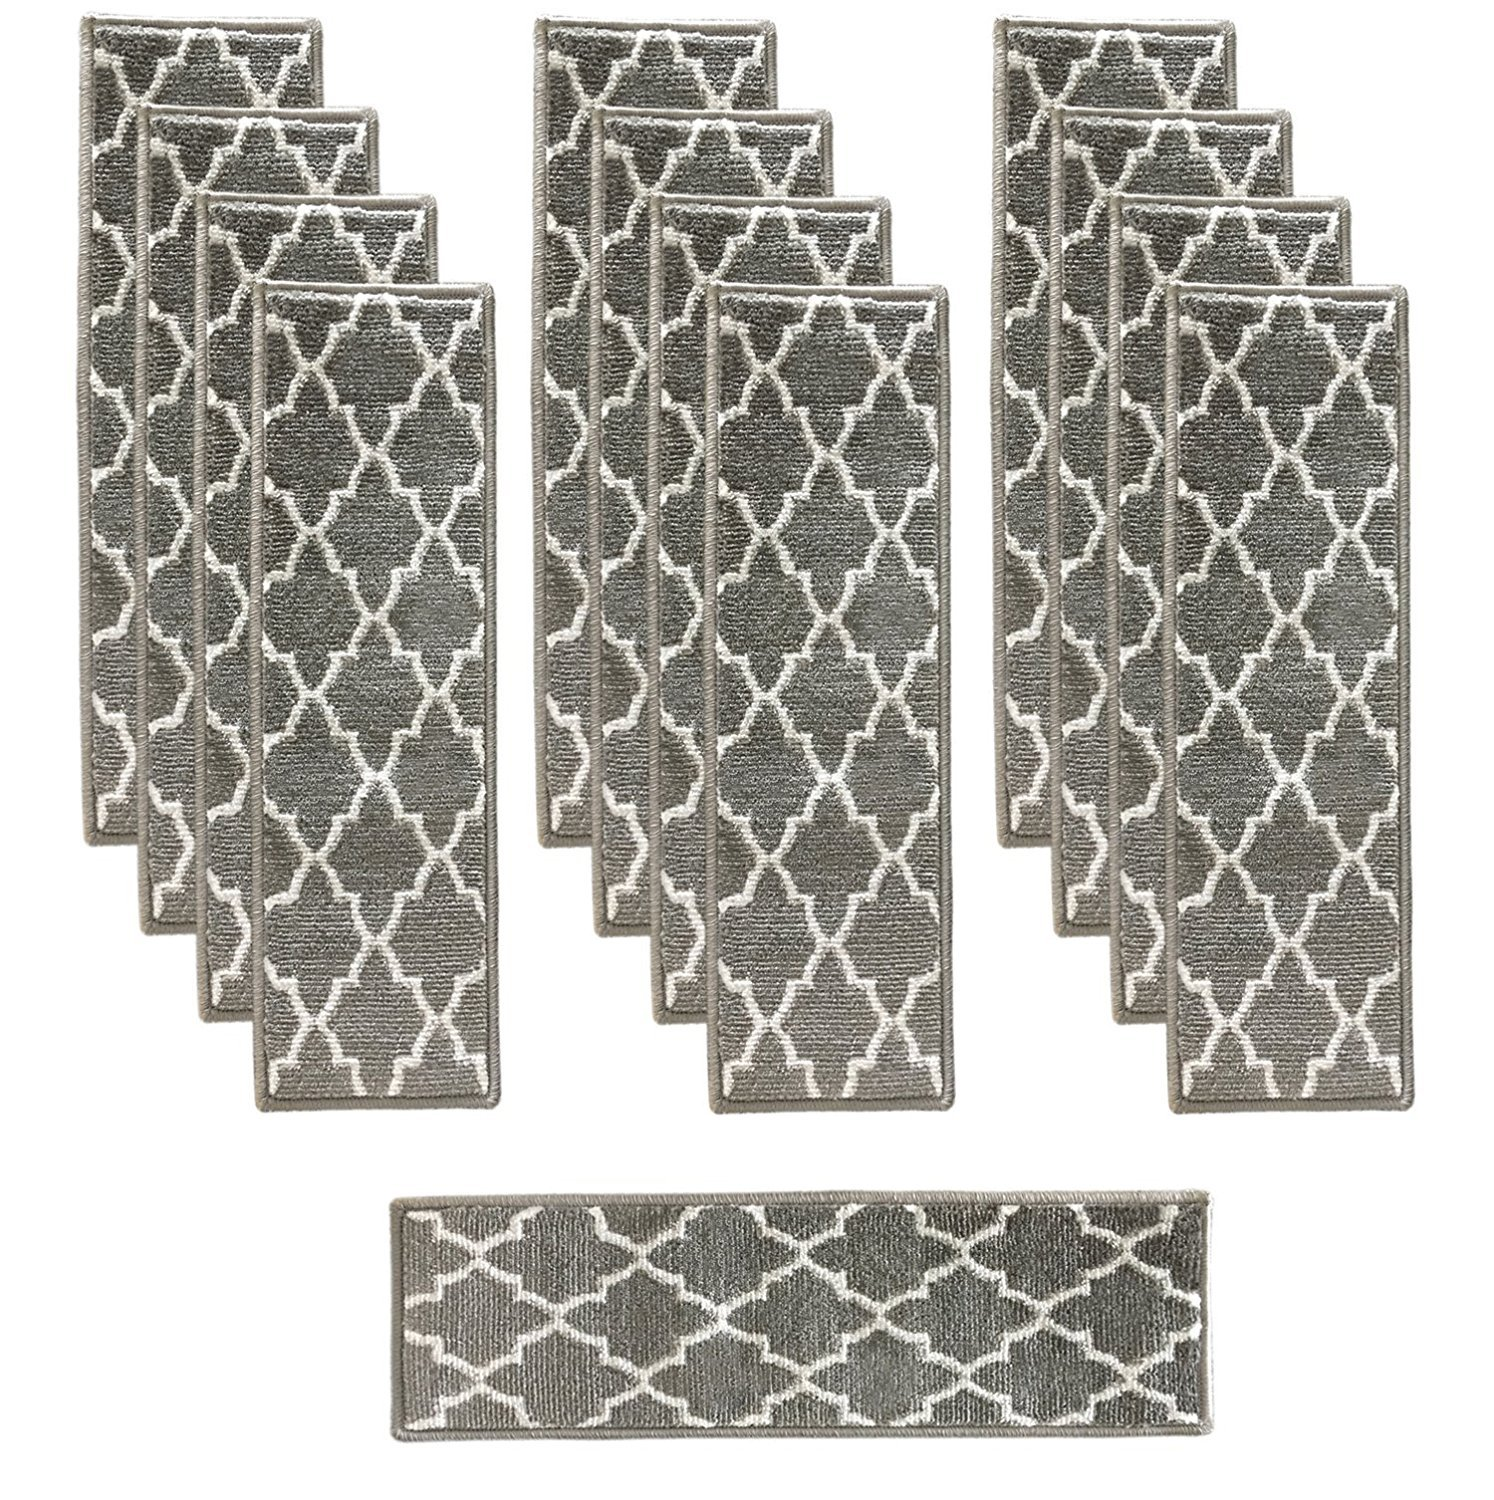 Sultansville Stair Treads 9 inch by 28 inch Trellisville Collection Trellis Design Vibrant and Soft Stair Treads, Grey & White, Pack of 13 [100% Polypropylene]